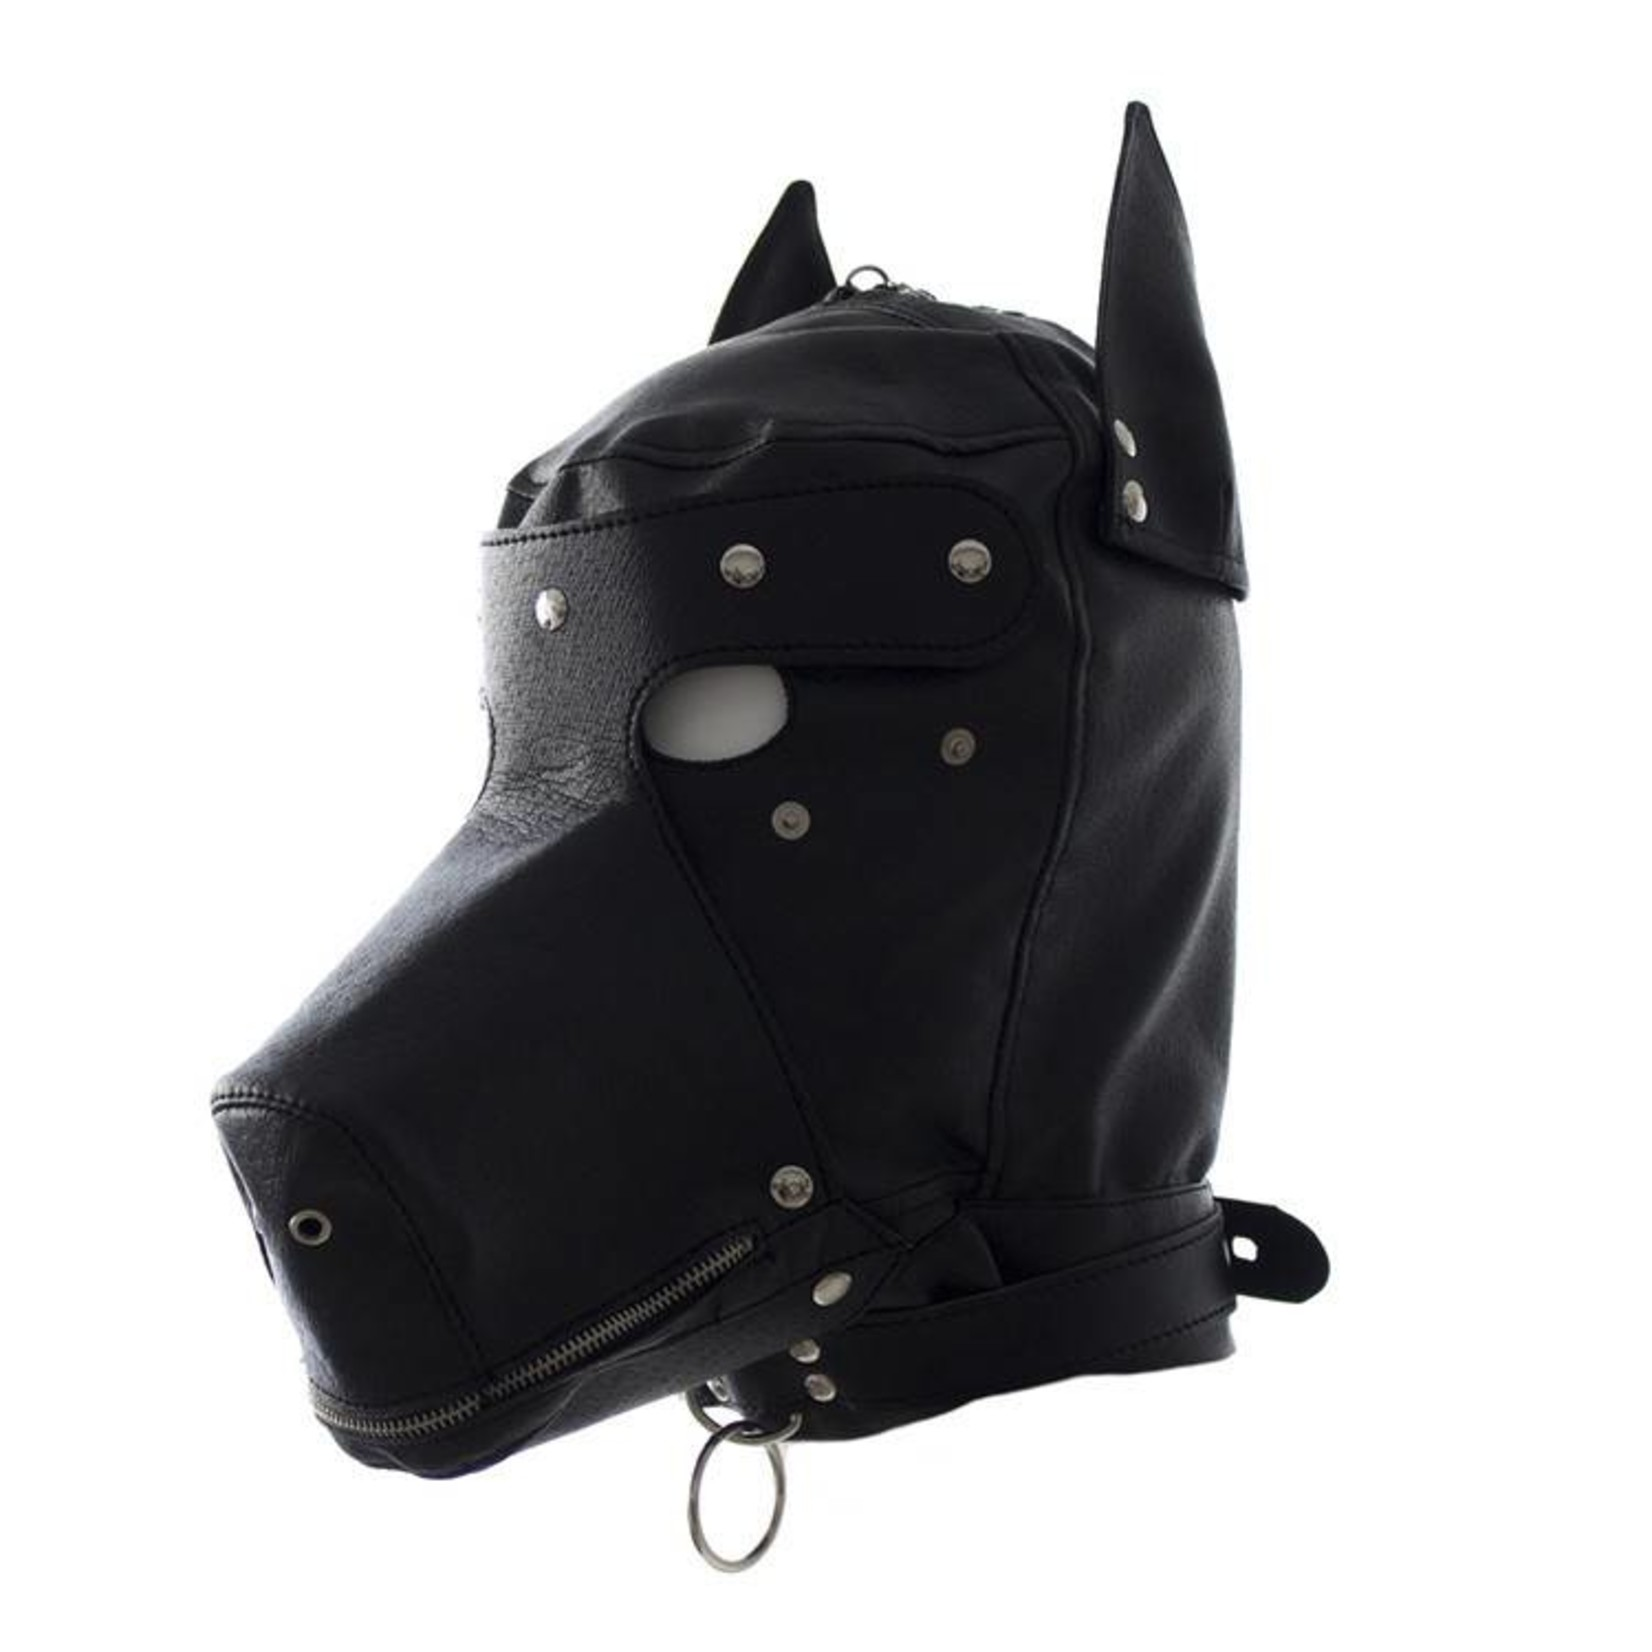 Perfect Lover Mask Doggie style